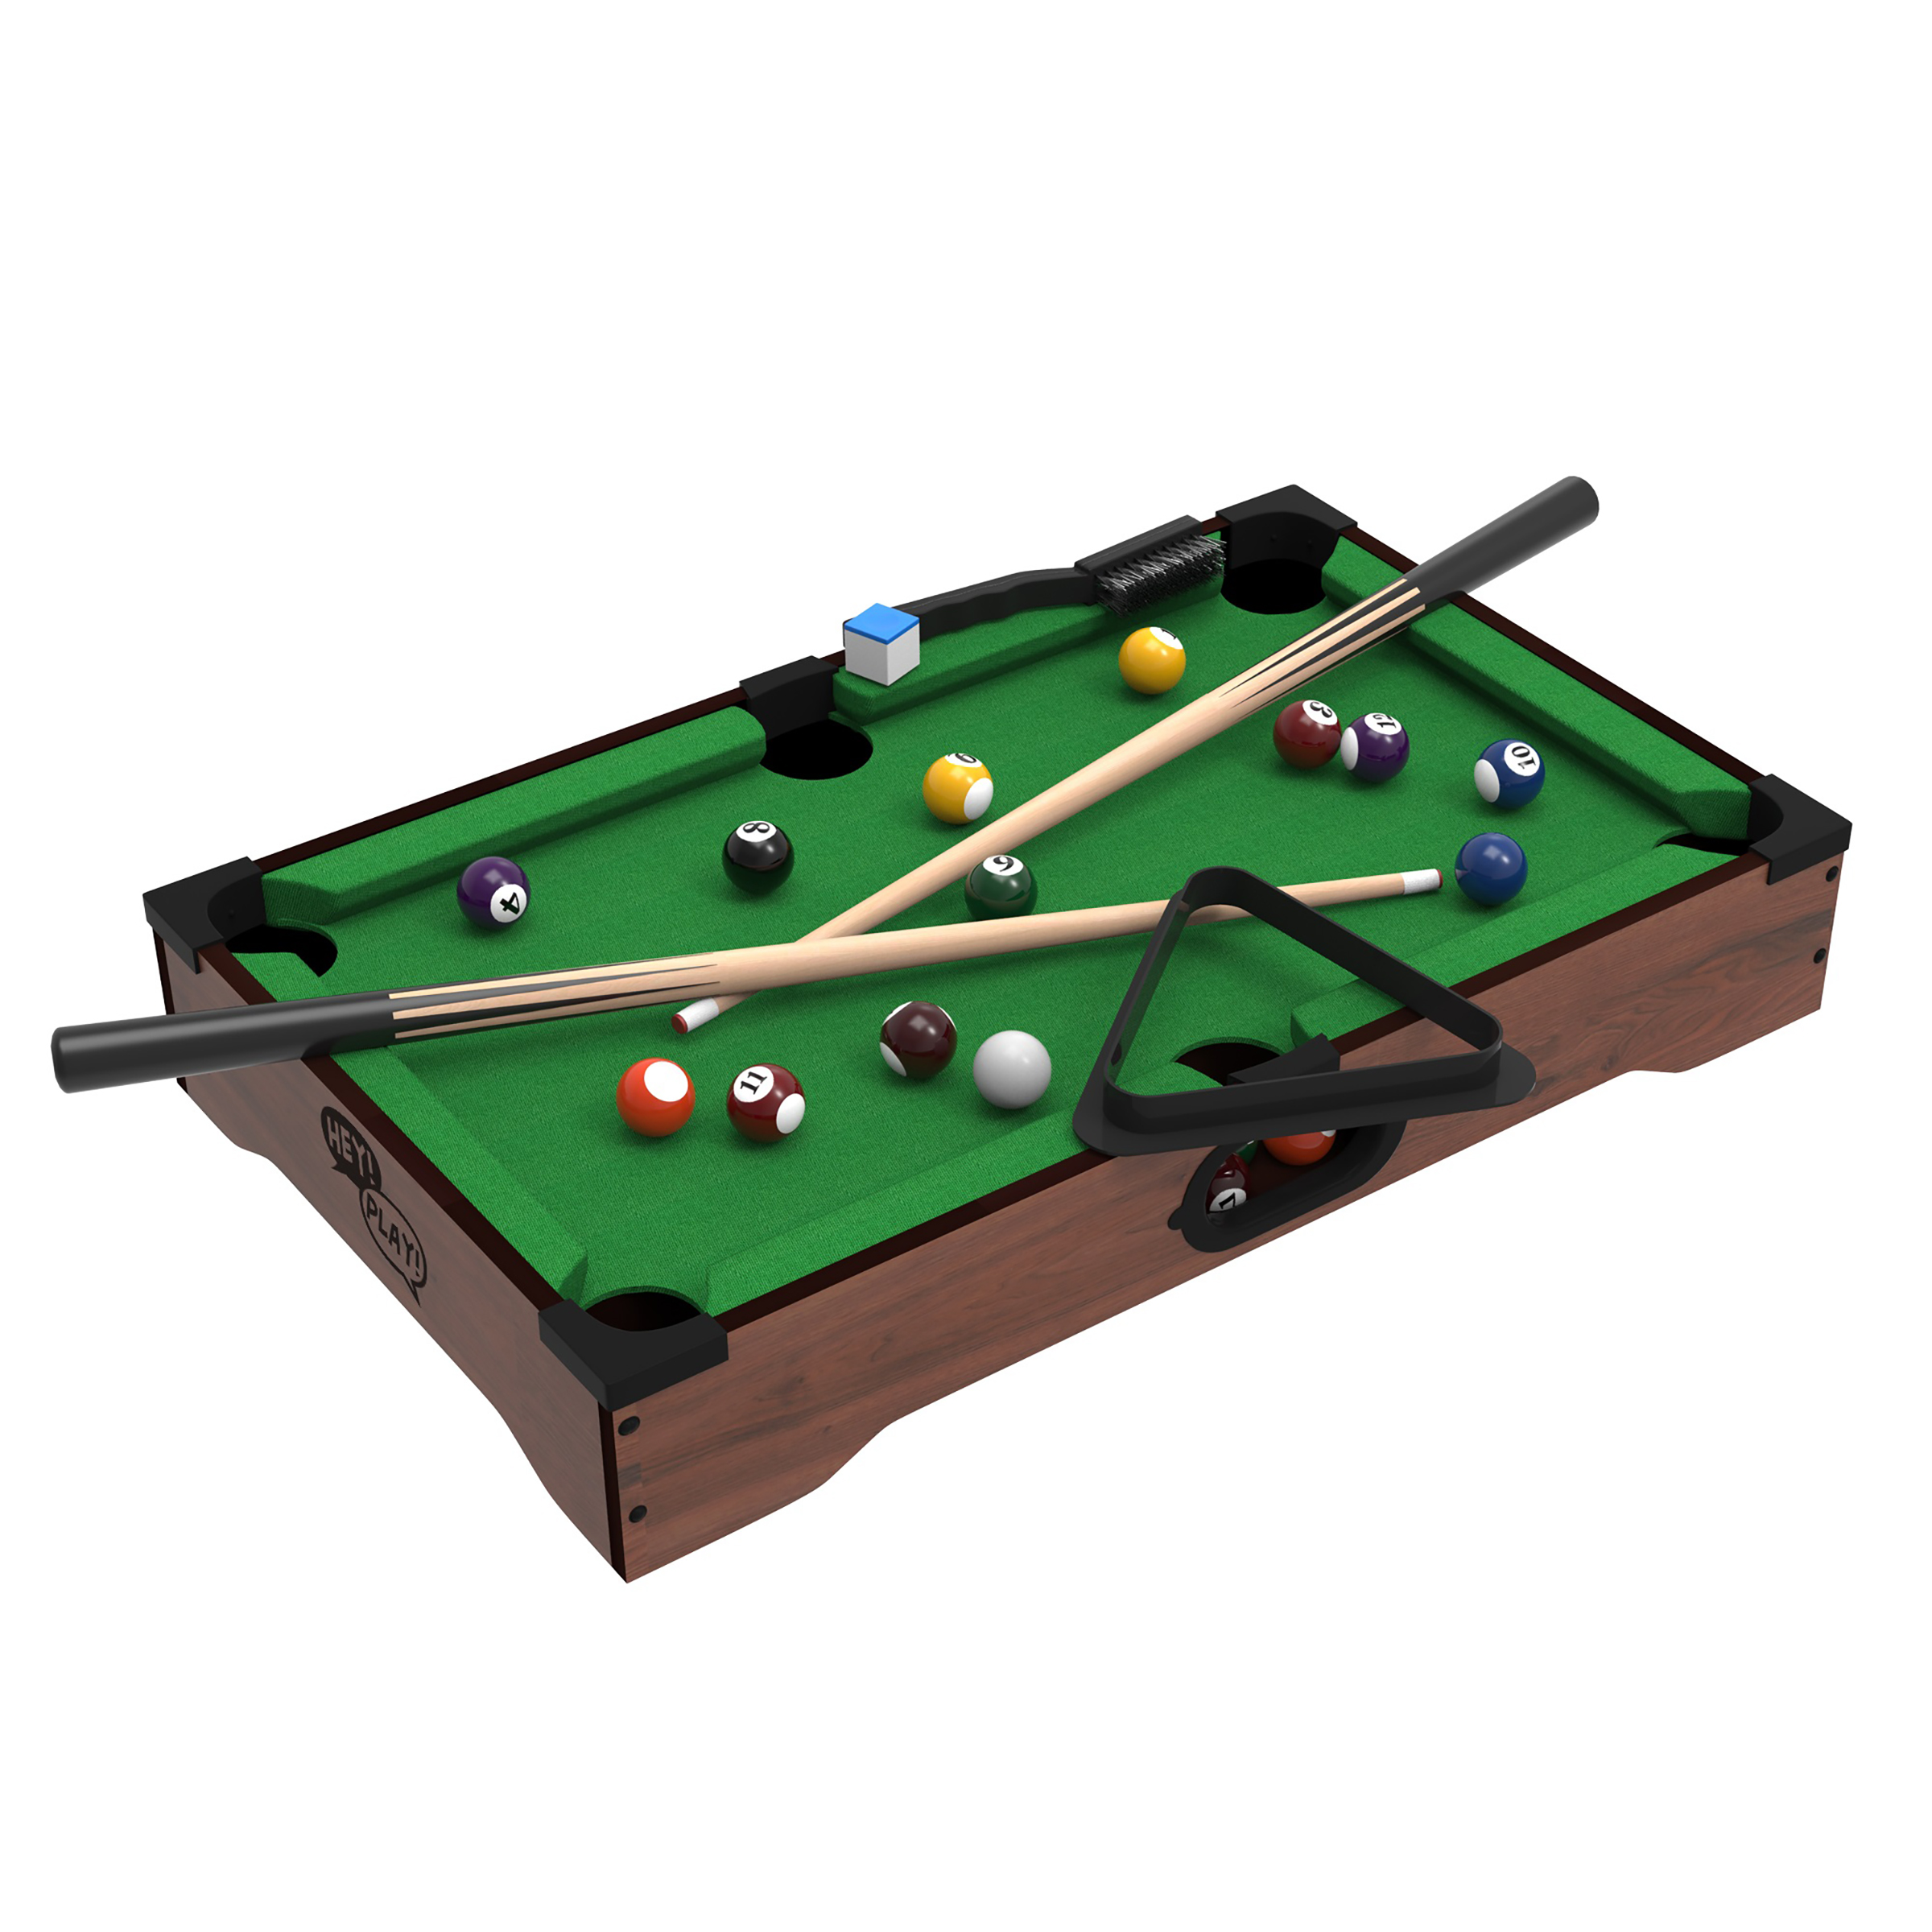 Mini Tabletop Pool Set  Billiards Game Includes Game Balls, Sticks, Chalk,  Brush